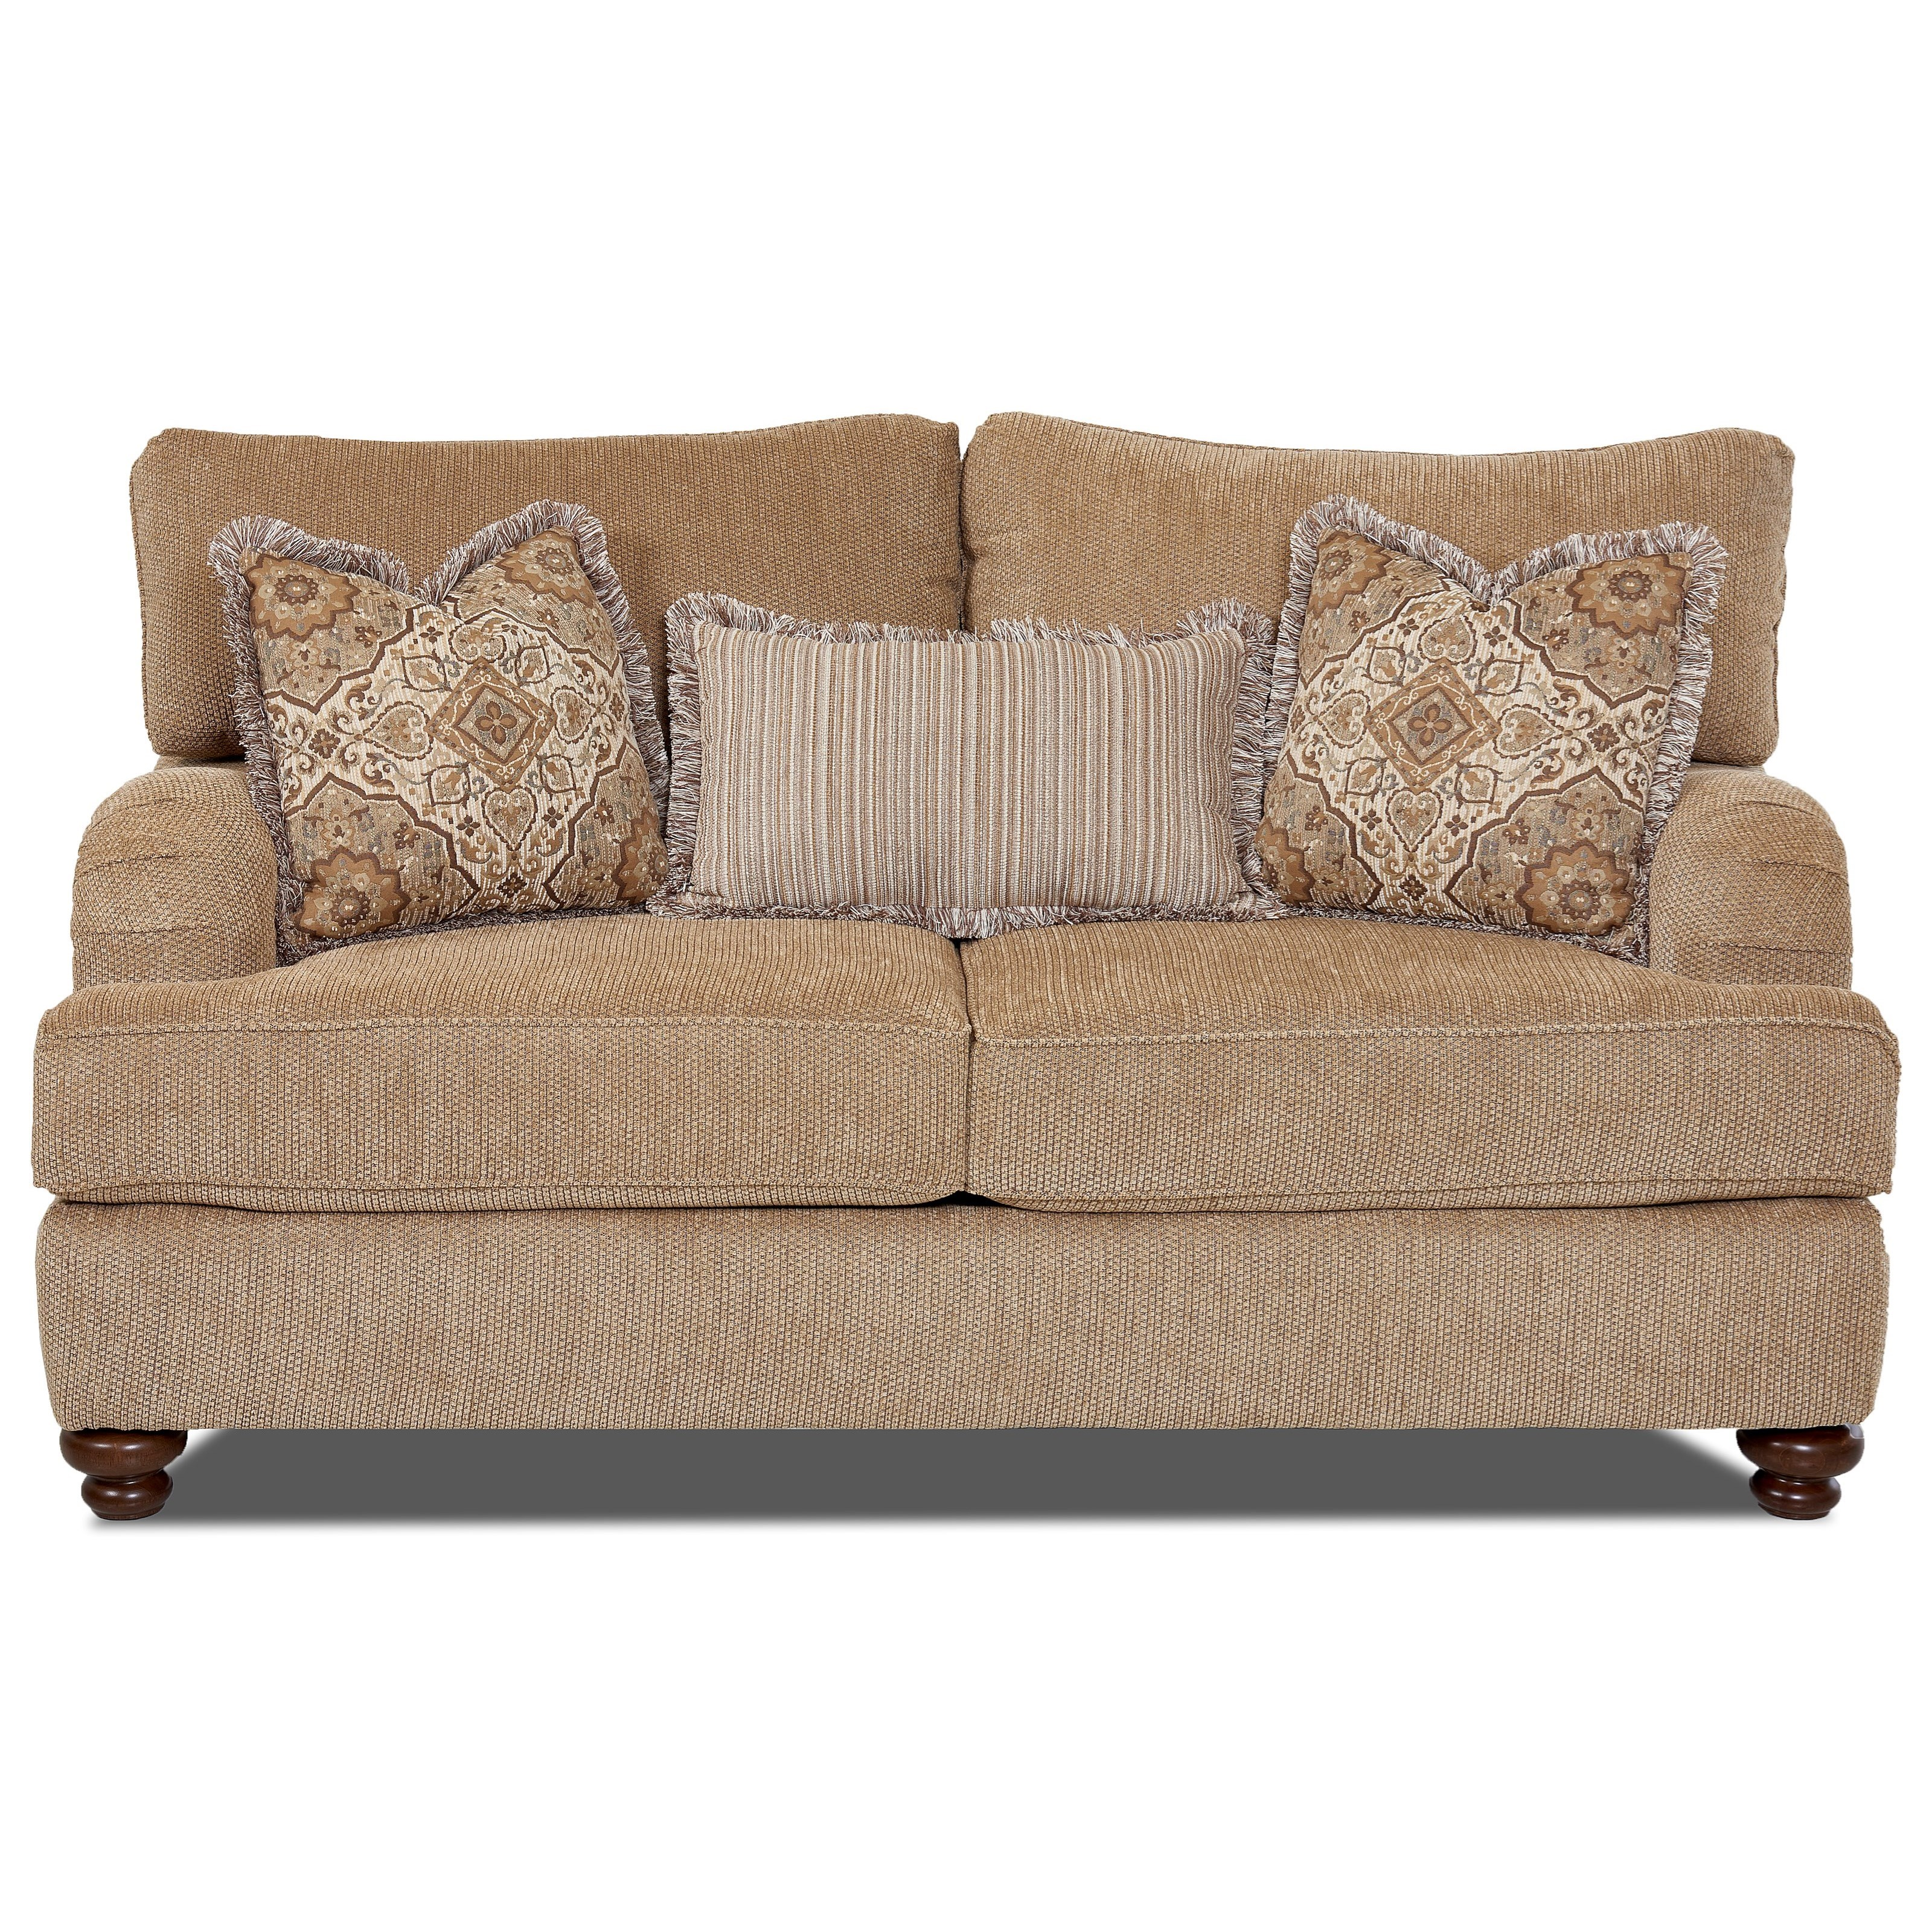 Klaussner Declan  Loveseat - Item Number: OK42200F LS Frenzy Cashmere